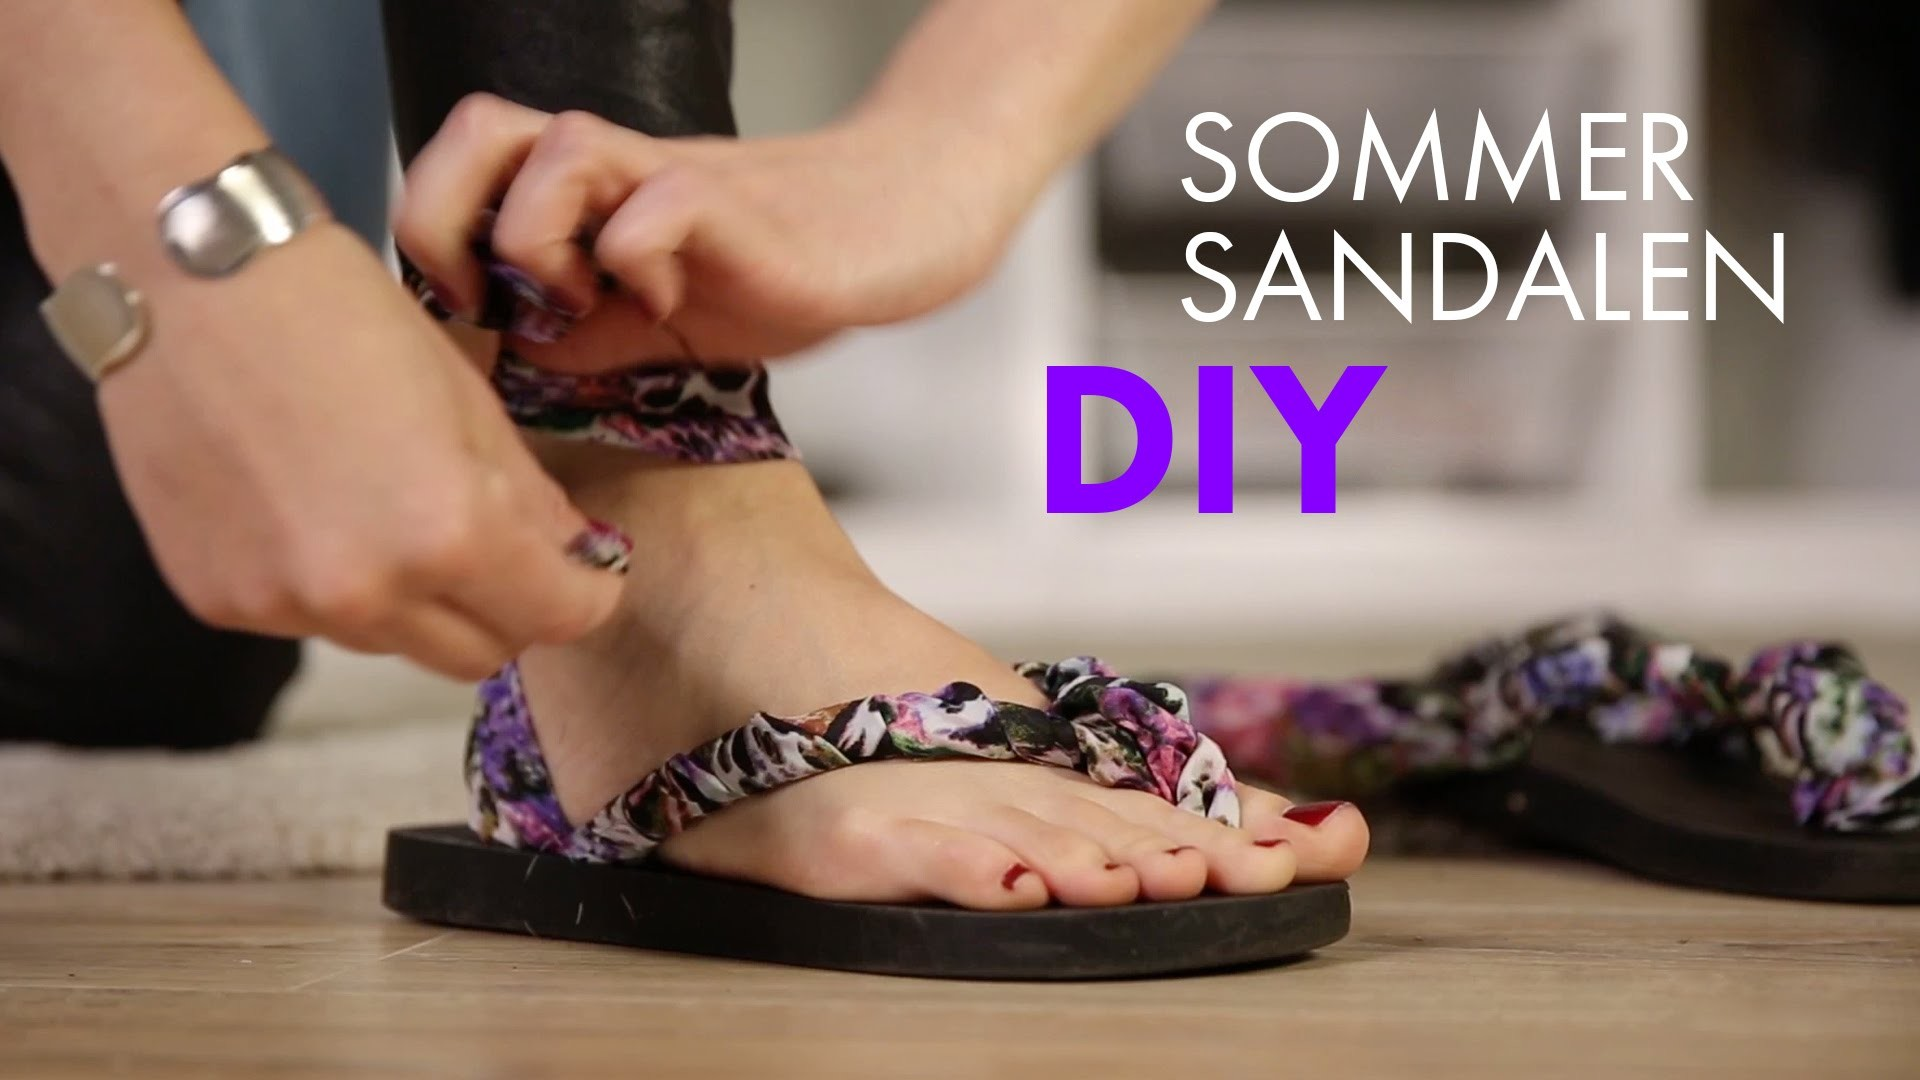 DIY Sommersandalen aus Flip Flops ♥ Upcyling Tutorial ♥ How To Wear STYLIGHT